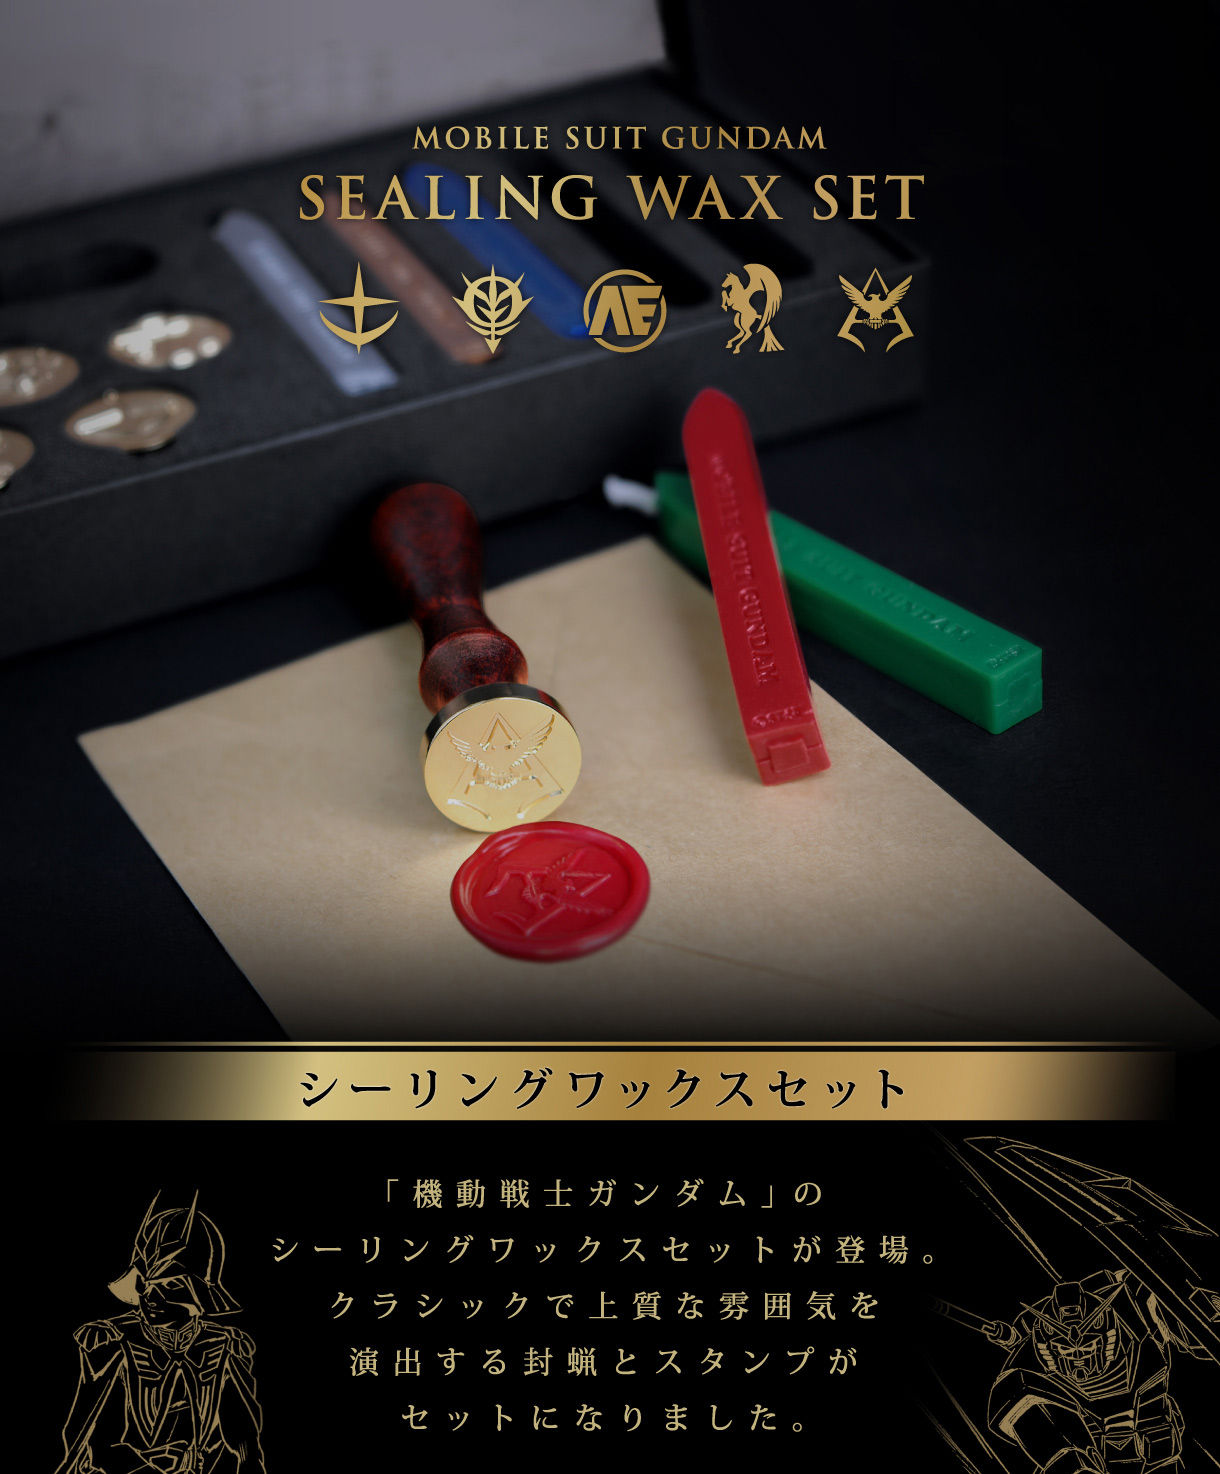 MOBILE SUIT GUNDAM SEALING WAX SET (PREMINUM BANDAI EDITION)